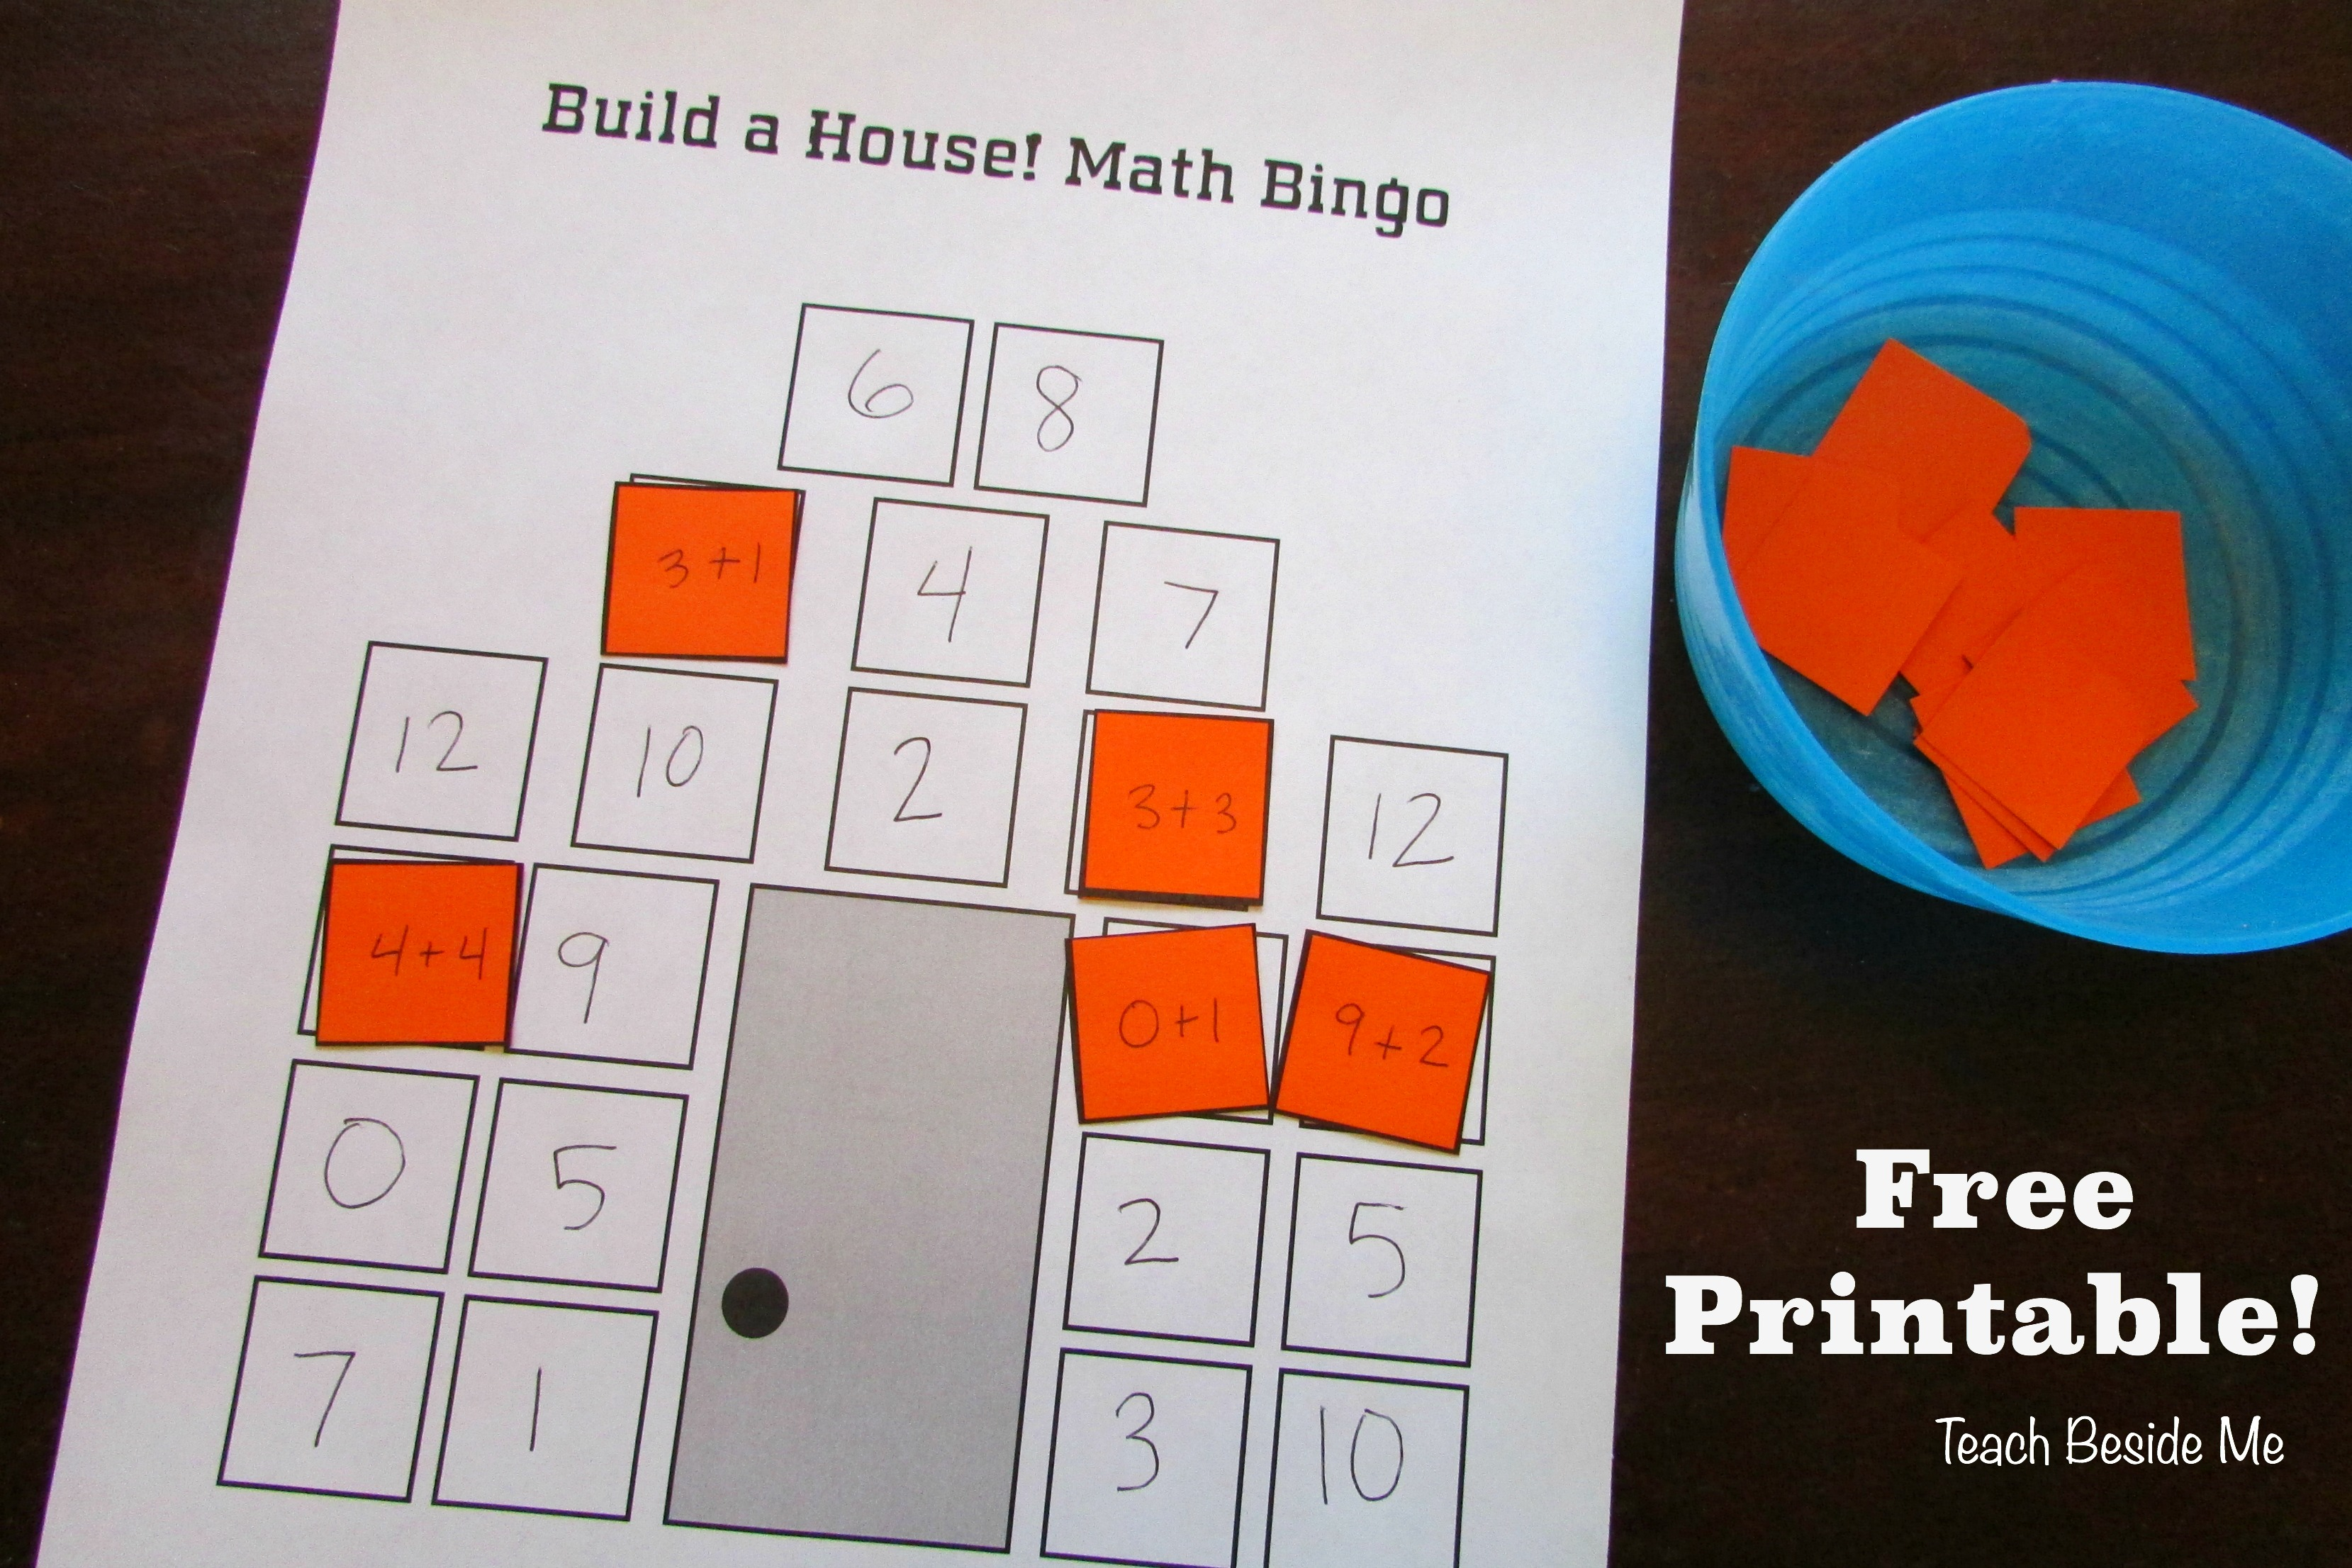 image relating to Math Bingo Printable referred to as Produce-A-Household Math Bingo Totally free Printable Prepare Beside Me